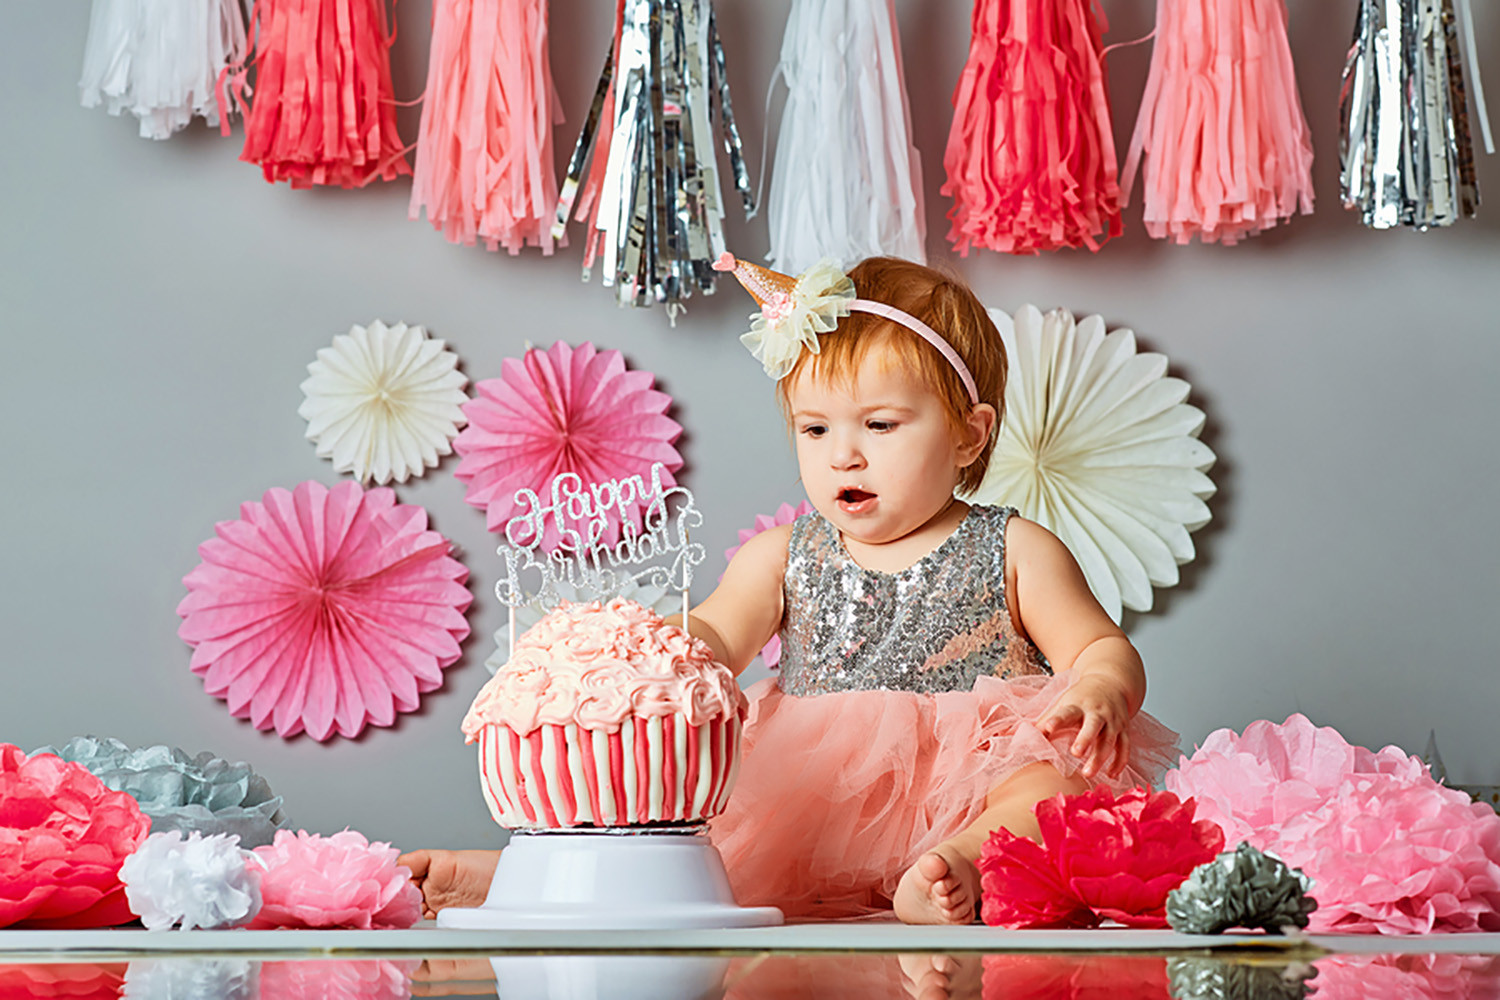 Baby Girls 1St Birthday Party Supplies  Baby s 1st Birthday Gifts & Party Ideas for Boys & Girls